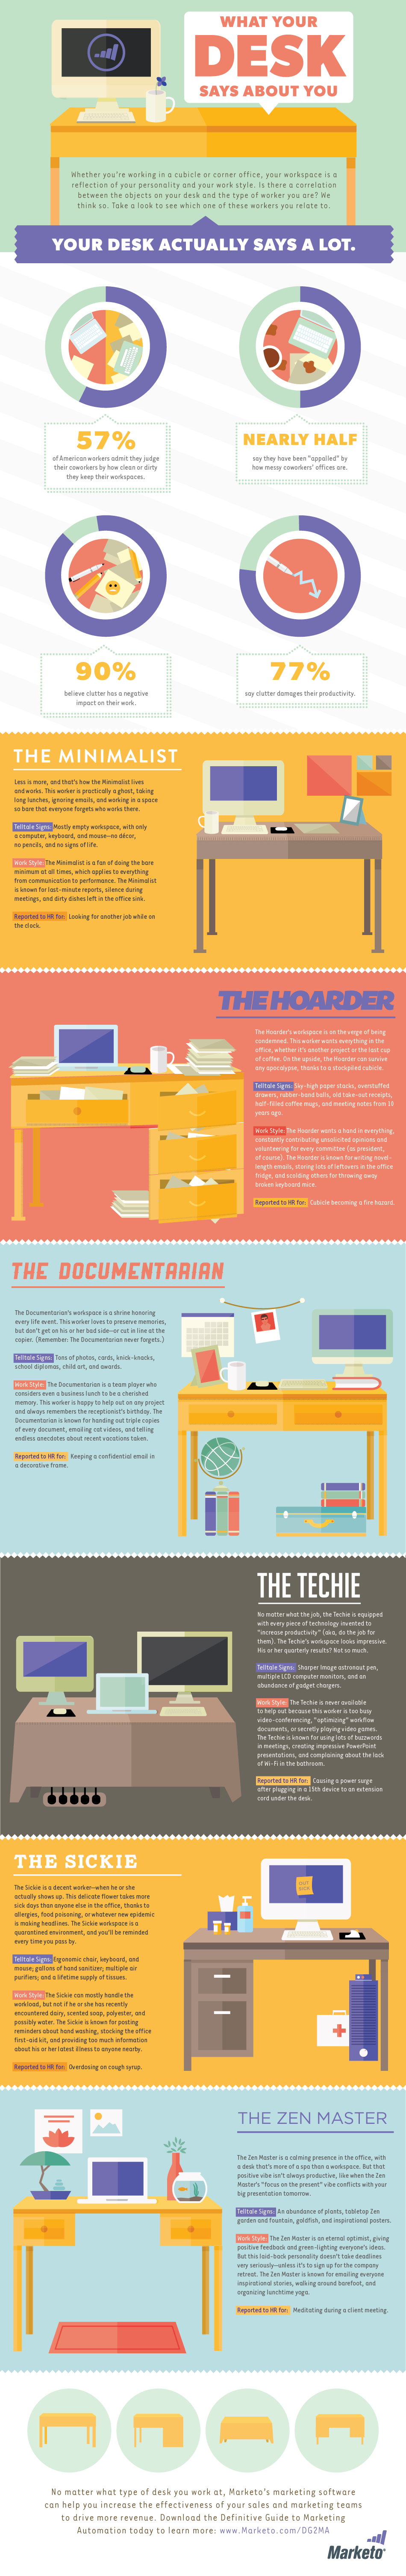 What Your Desk Says About You infographic